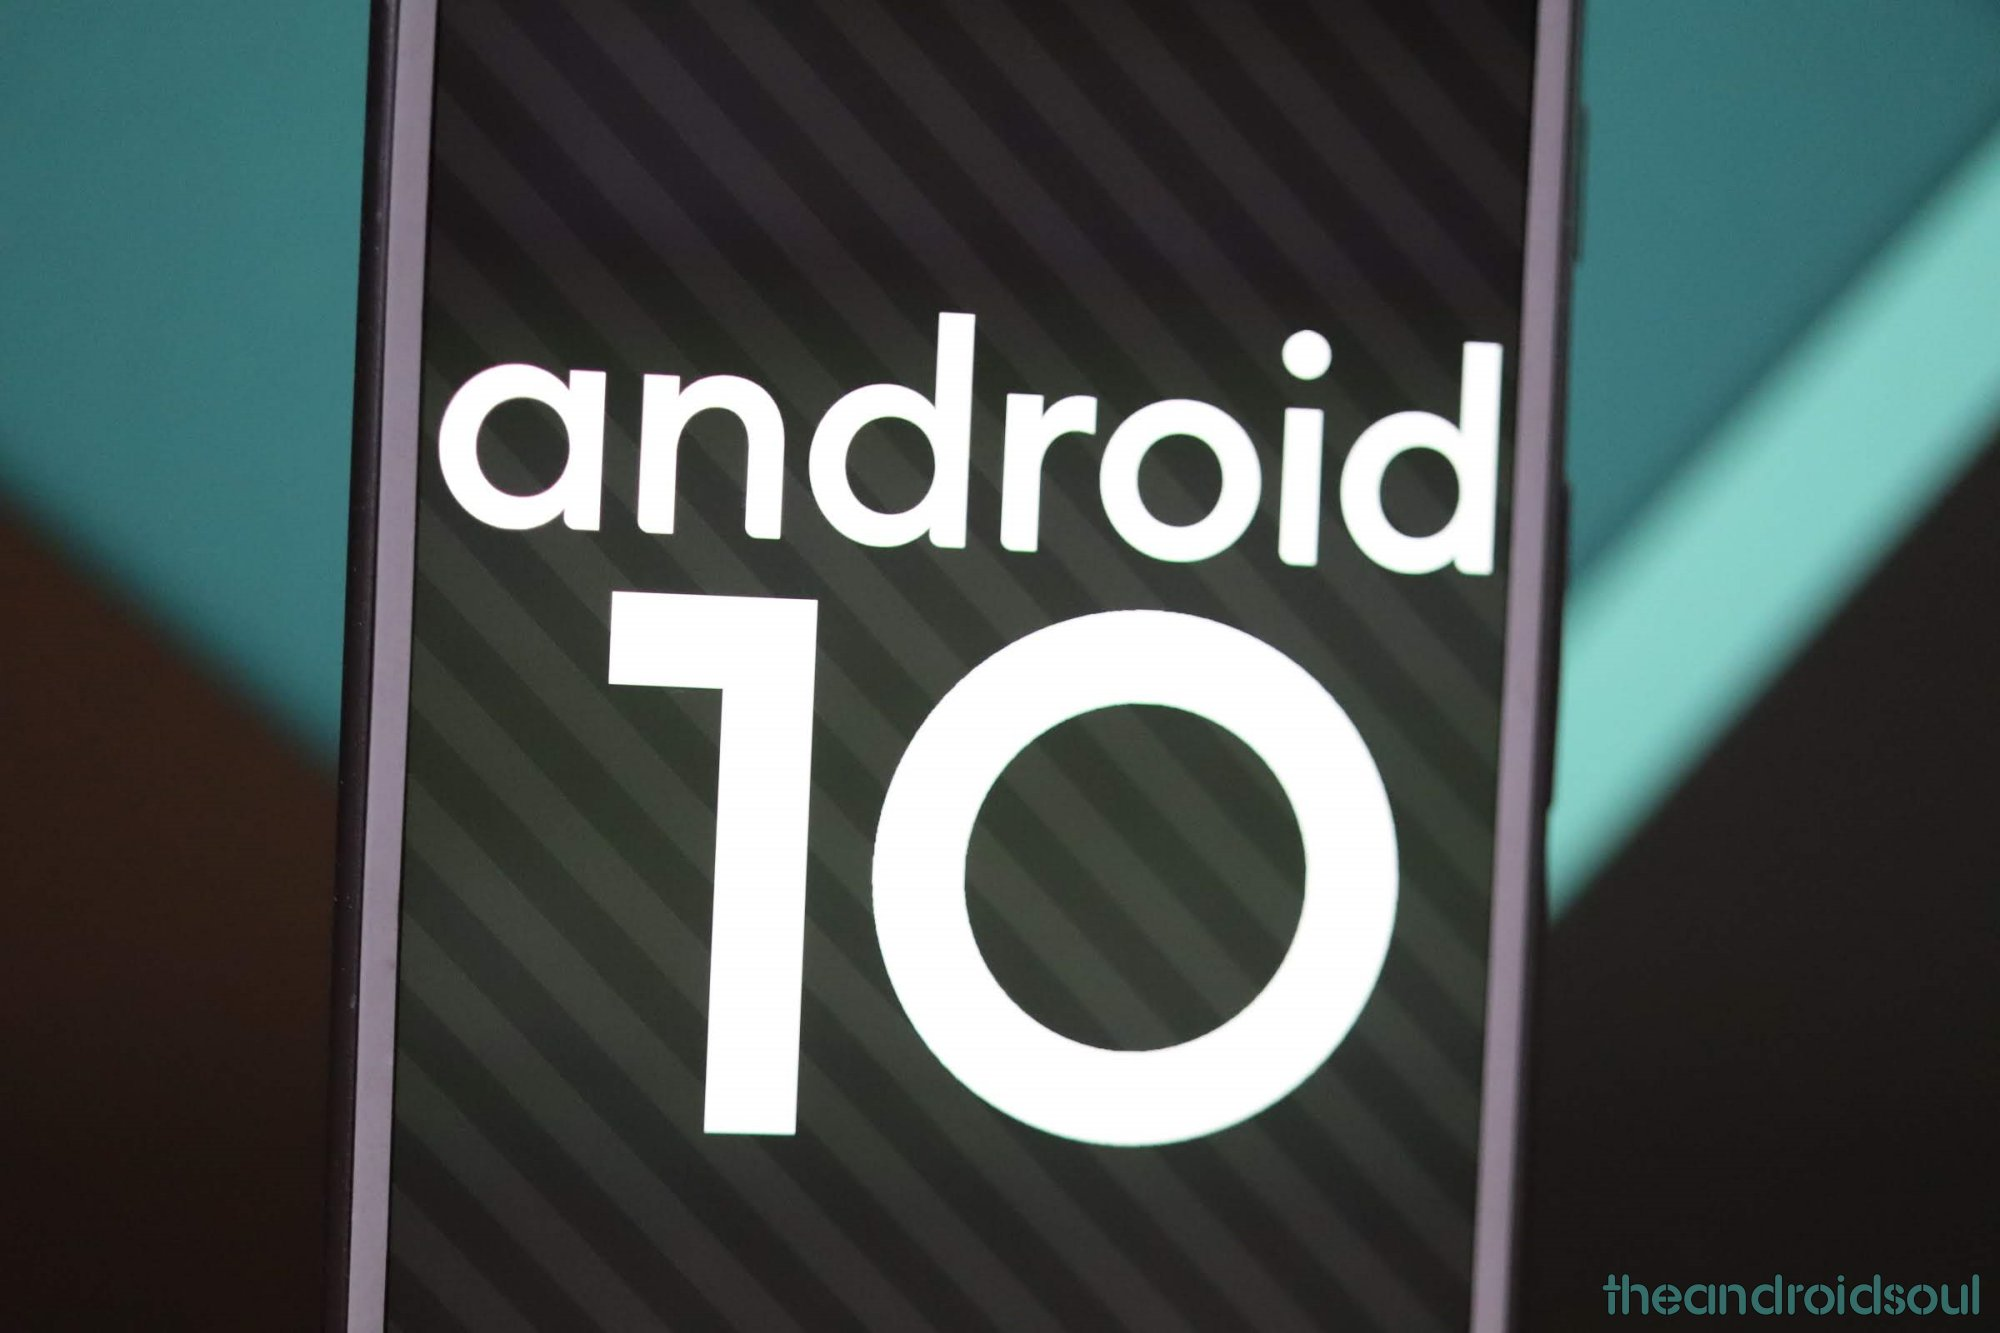 Android 10 features